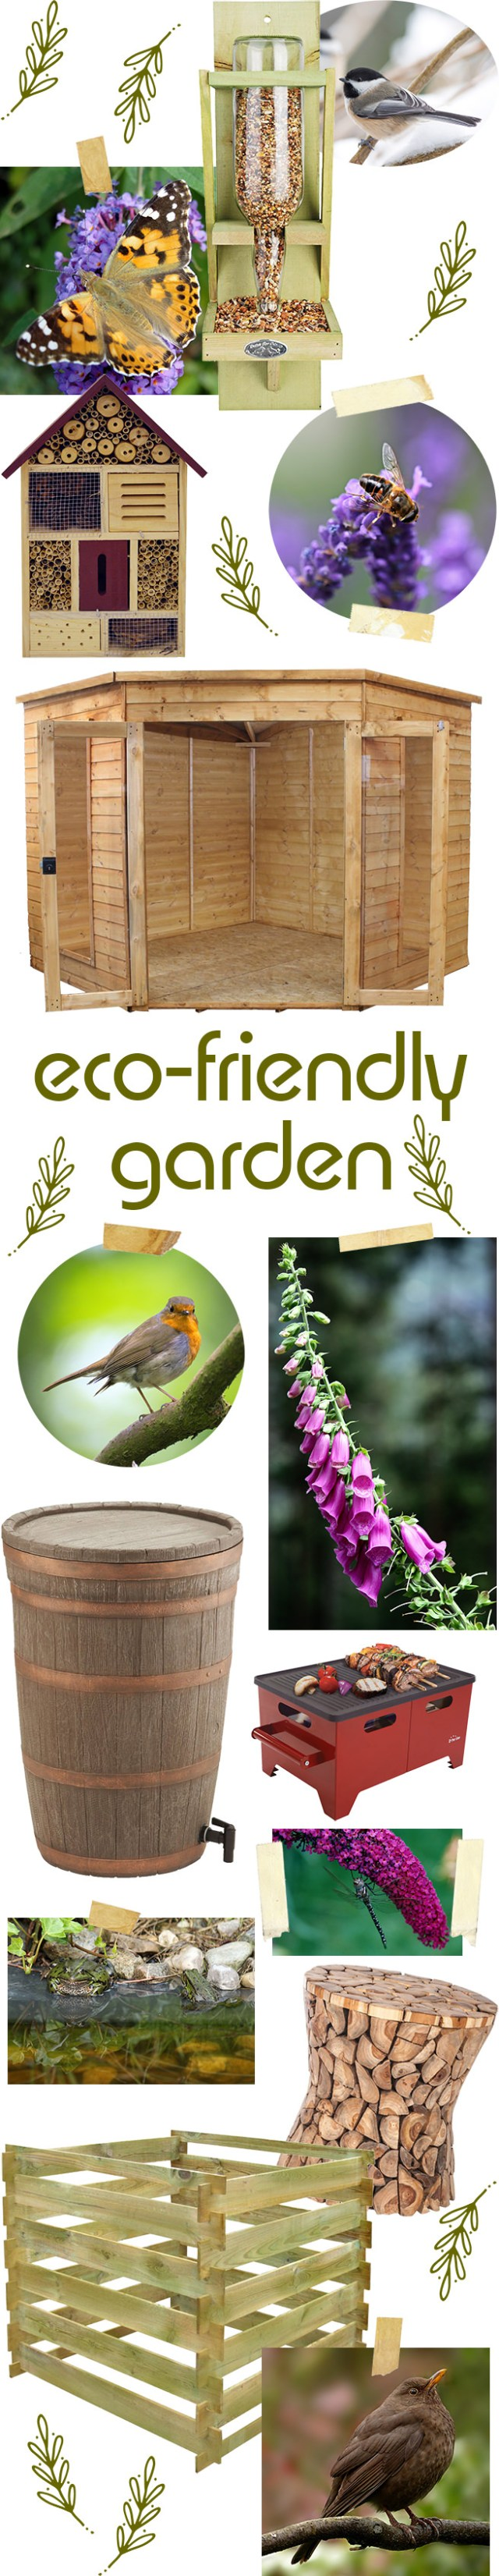 Eco-friendly garden mood board in collaboration with Wayfair | H is for Home